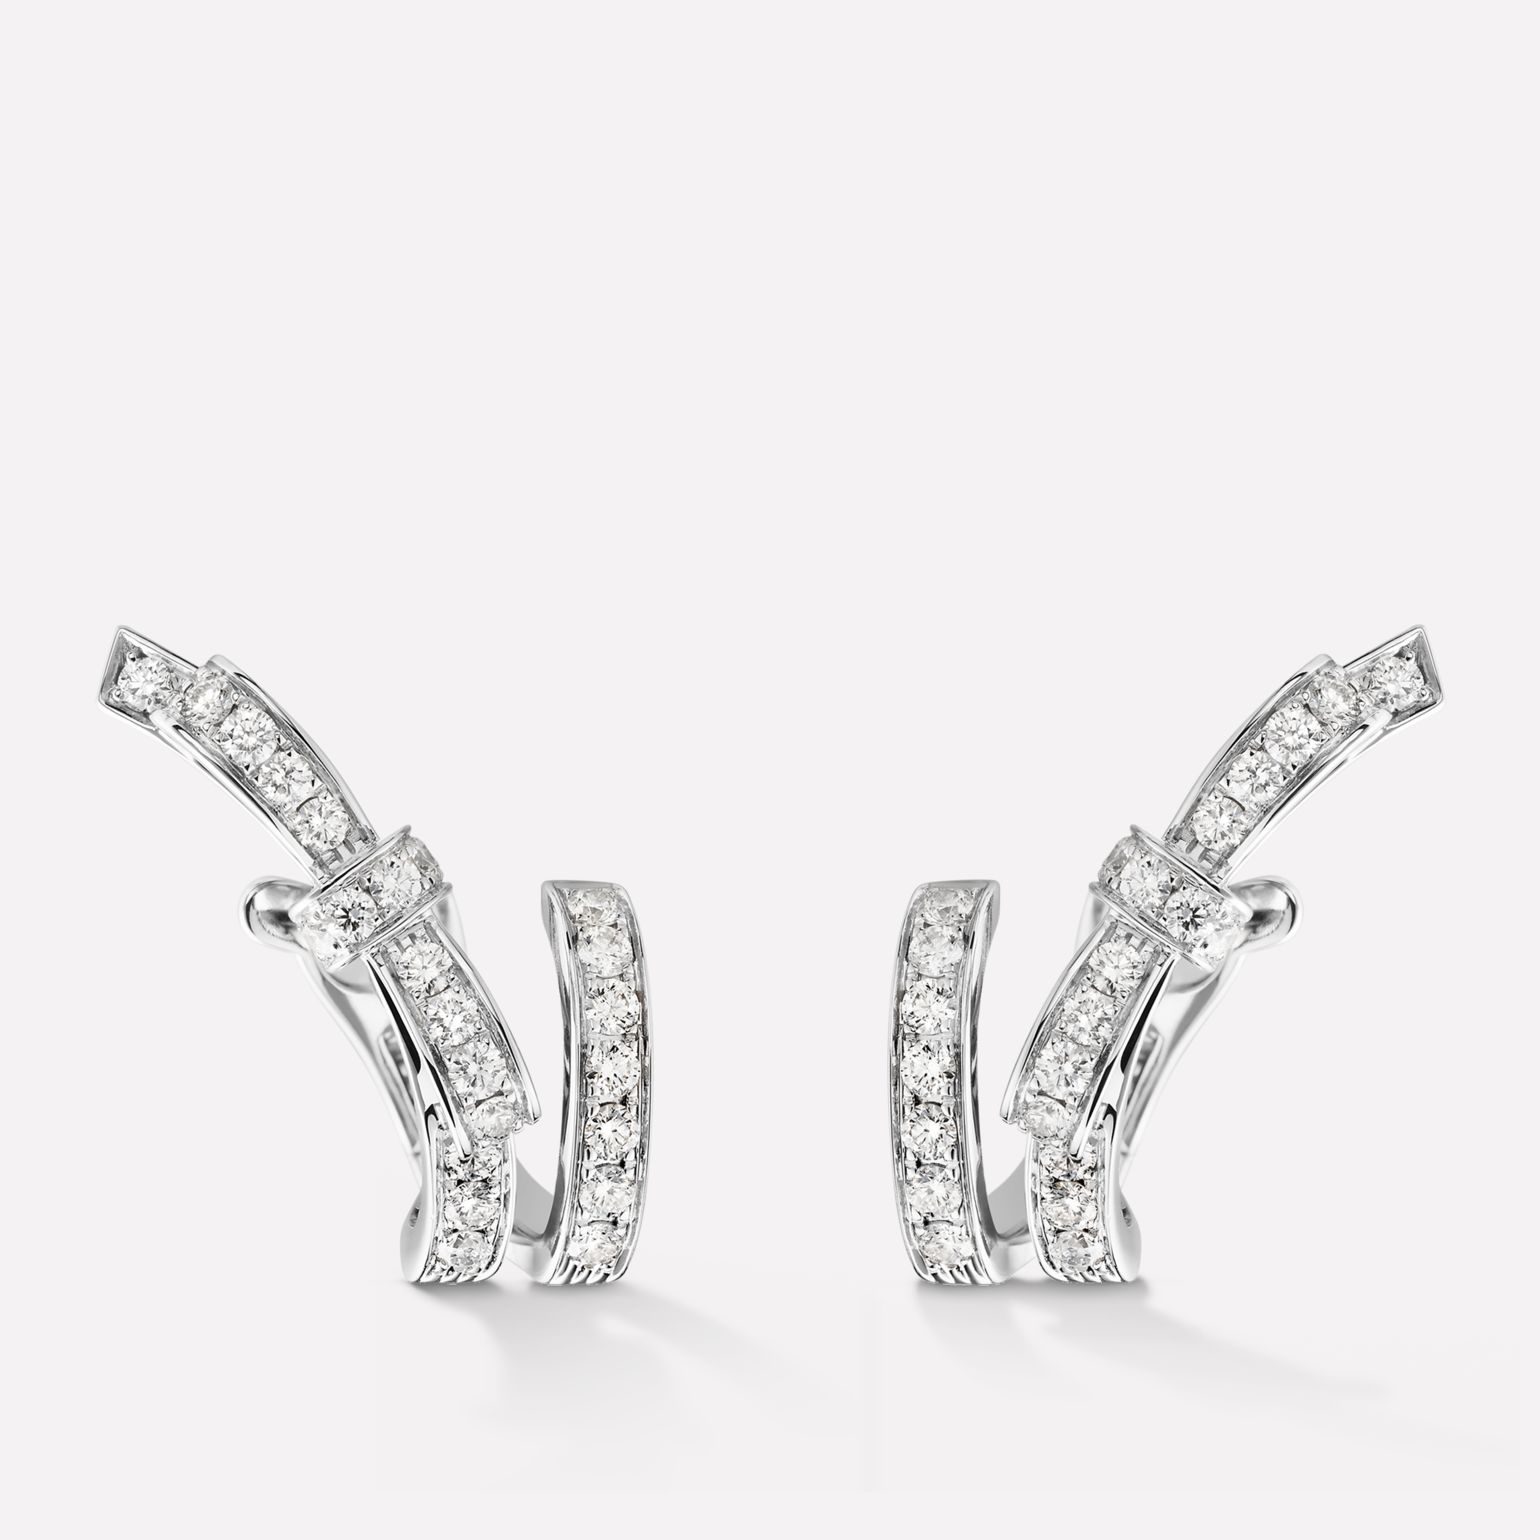 Boucles d'oreilles Ruban Or blanc 18 carats, diamants